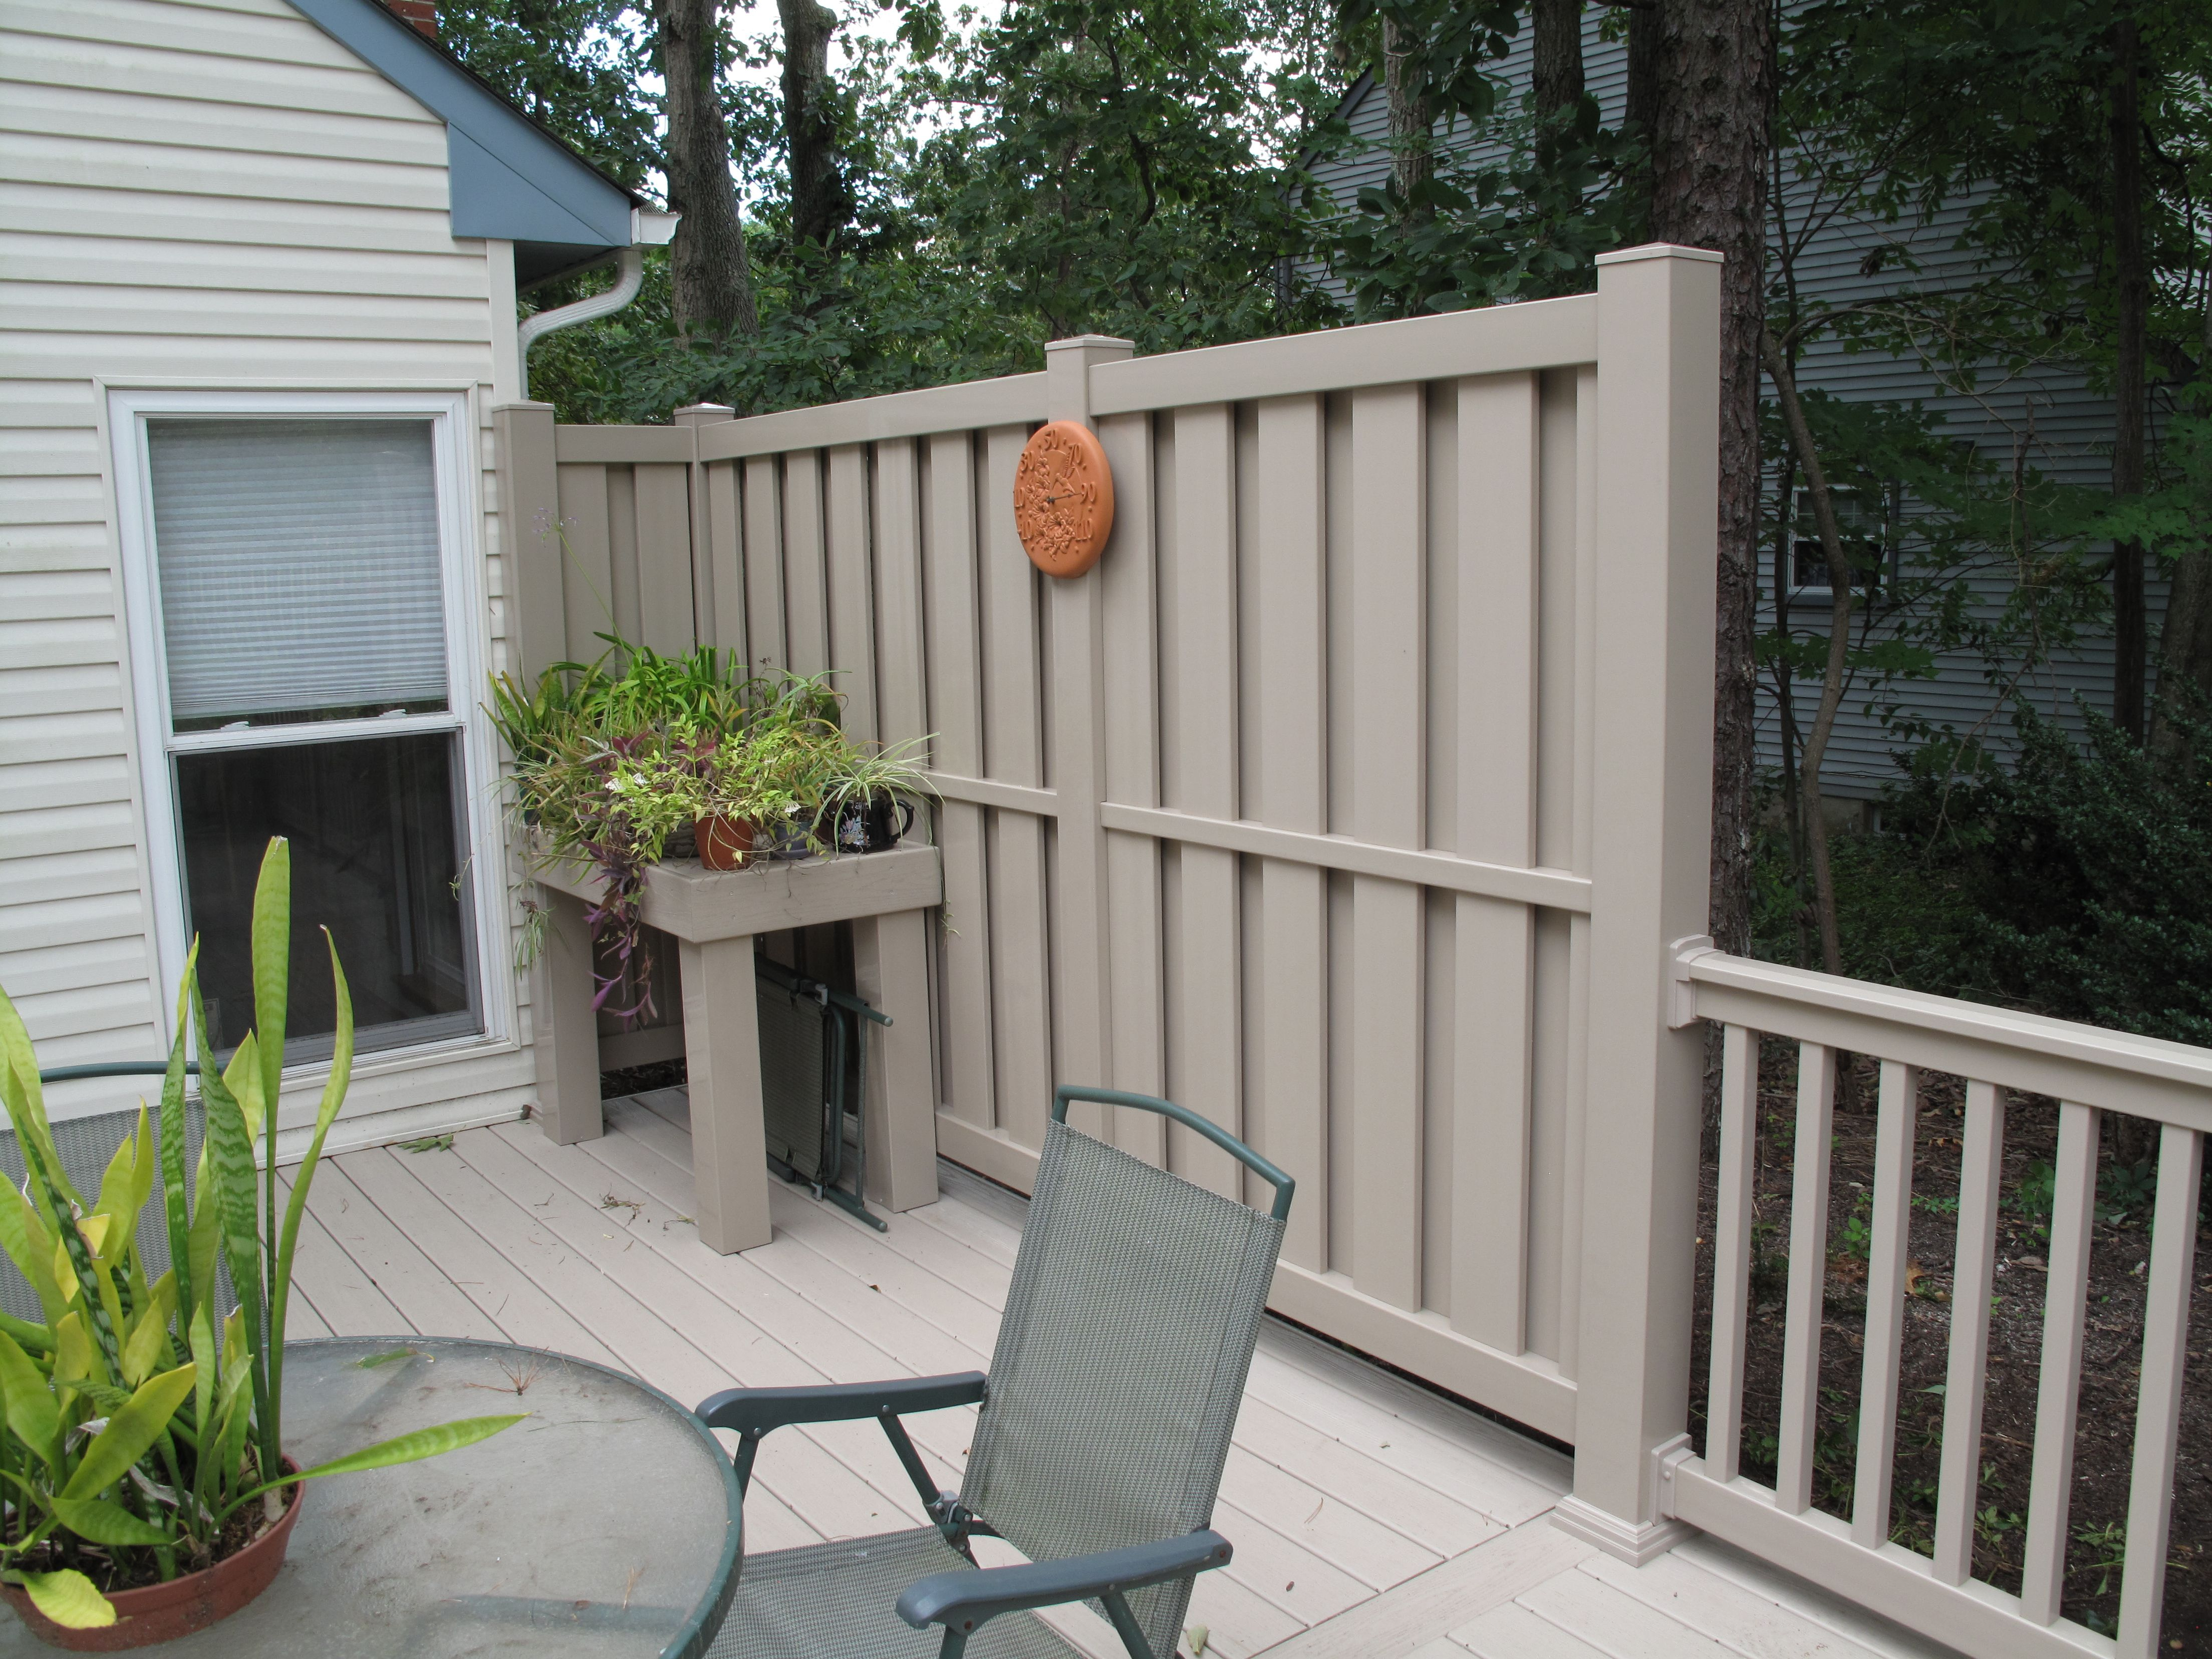 Pvc vinyl fence goes beyond white see shorelines two tone talbot this tan vinyl shadowbox fence is done using great railing products contact us baanklon Images